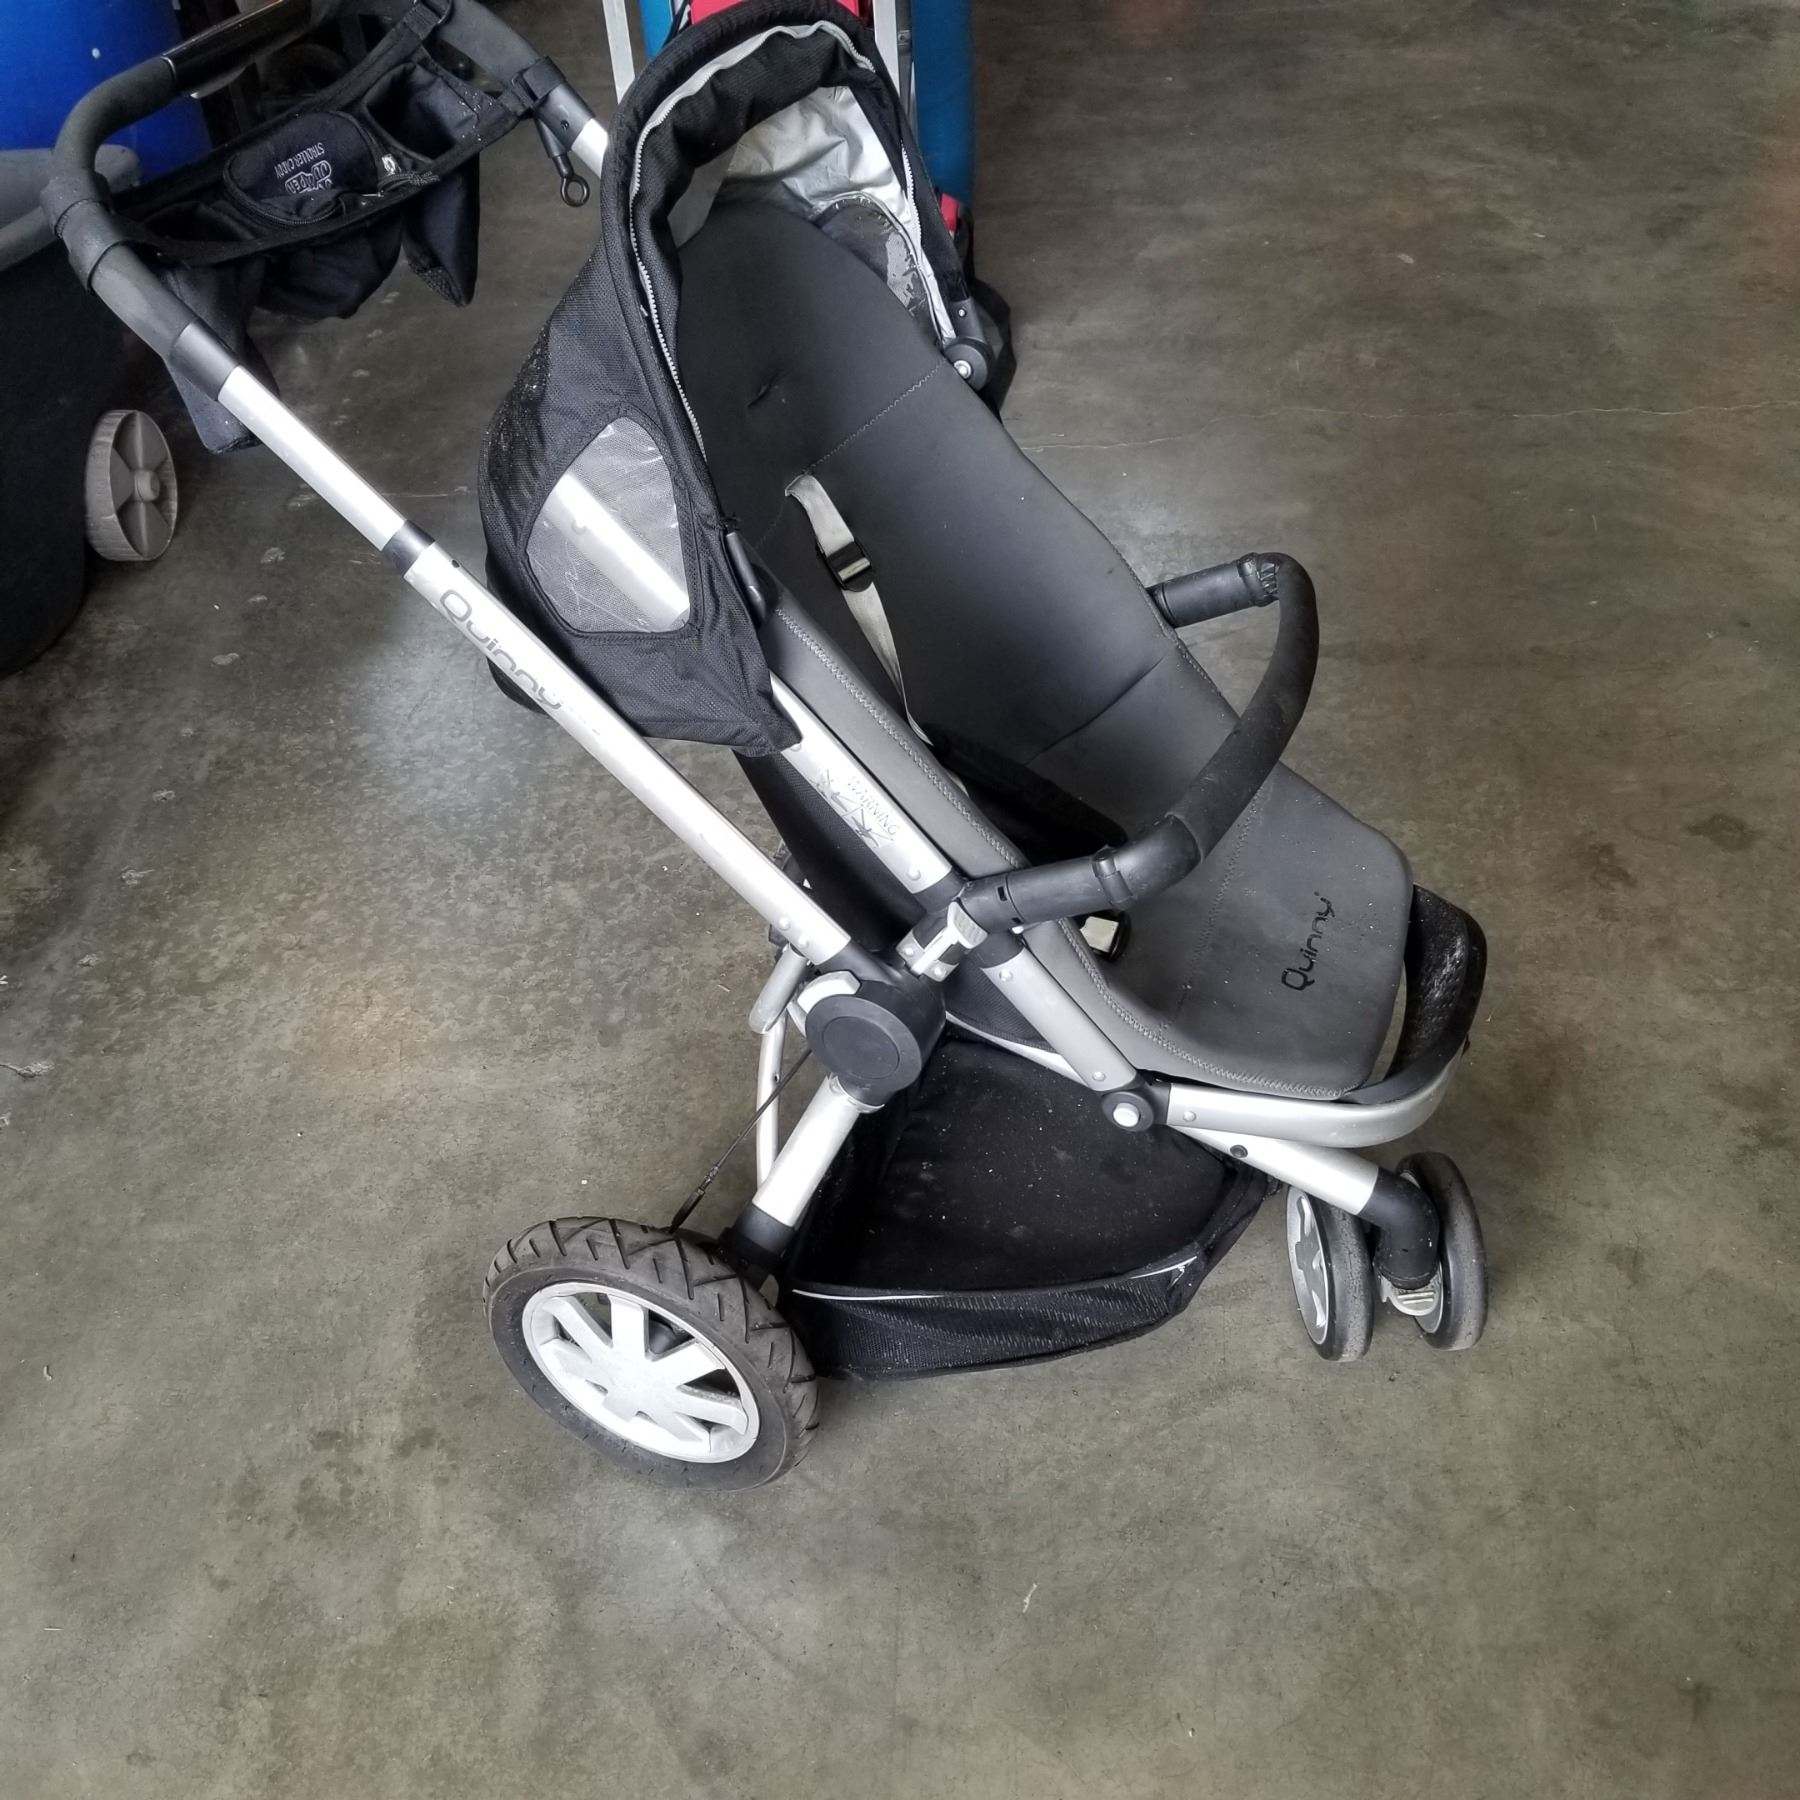 QUINNY FOLDING STROLLER - Big Valley Auction